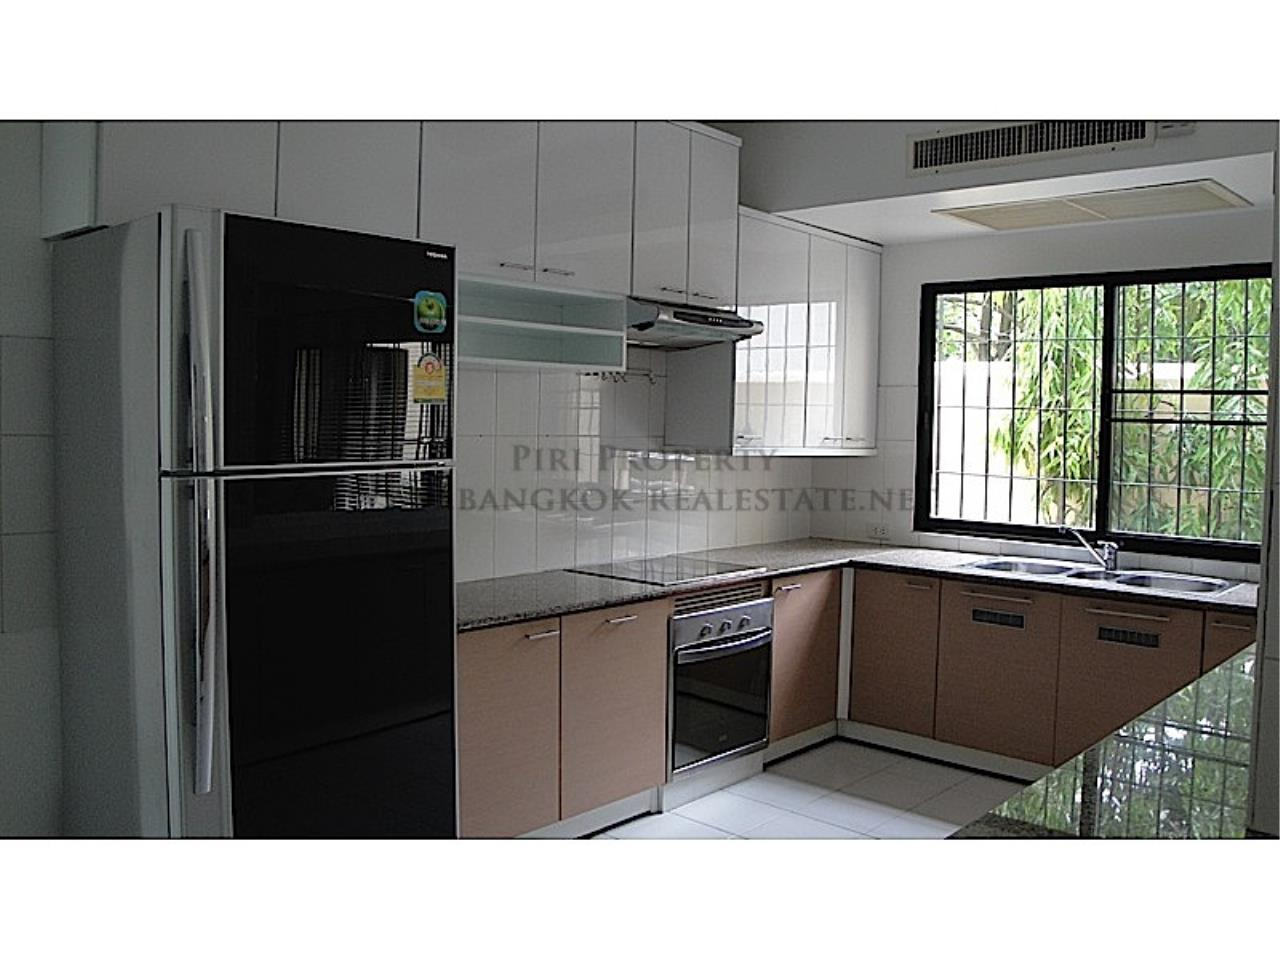 Piri Property Agency's Huge and very exclusively furnished 3 Bedroom Condo 10